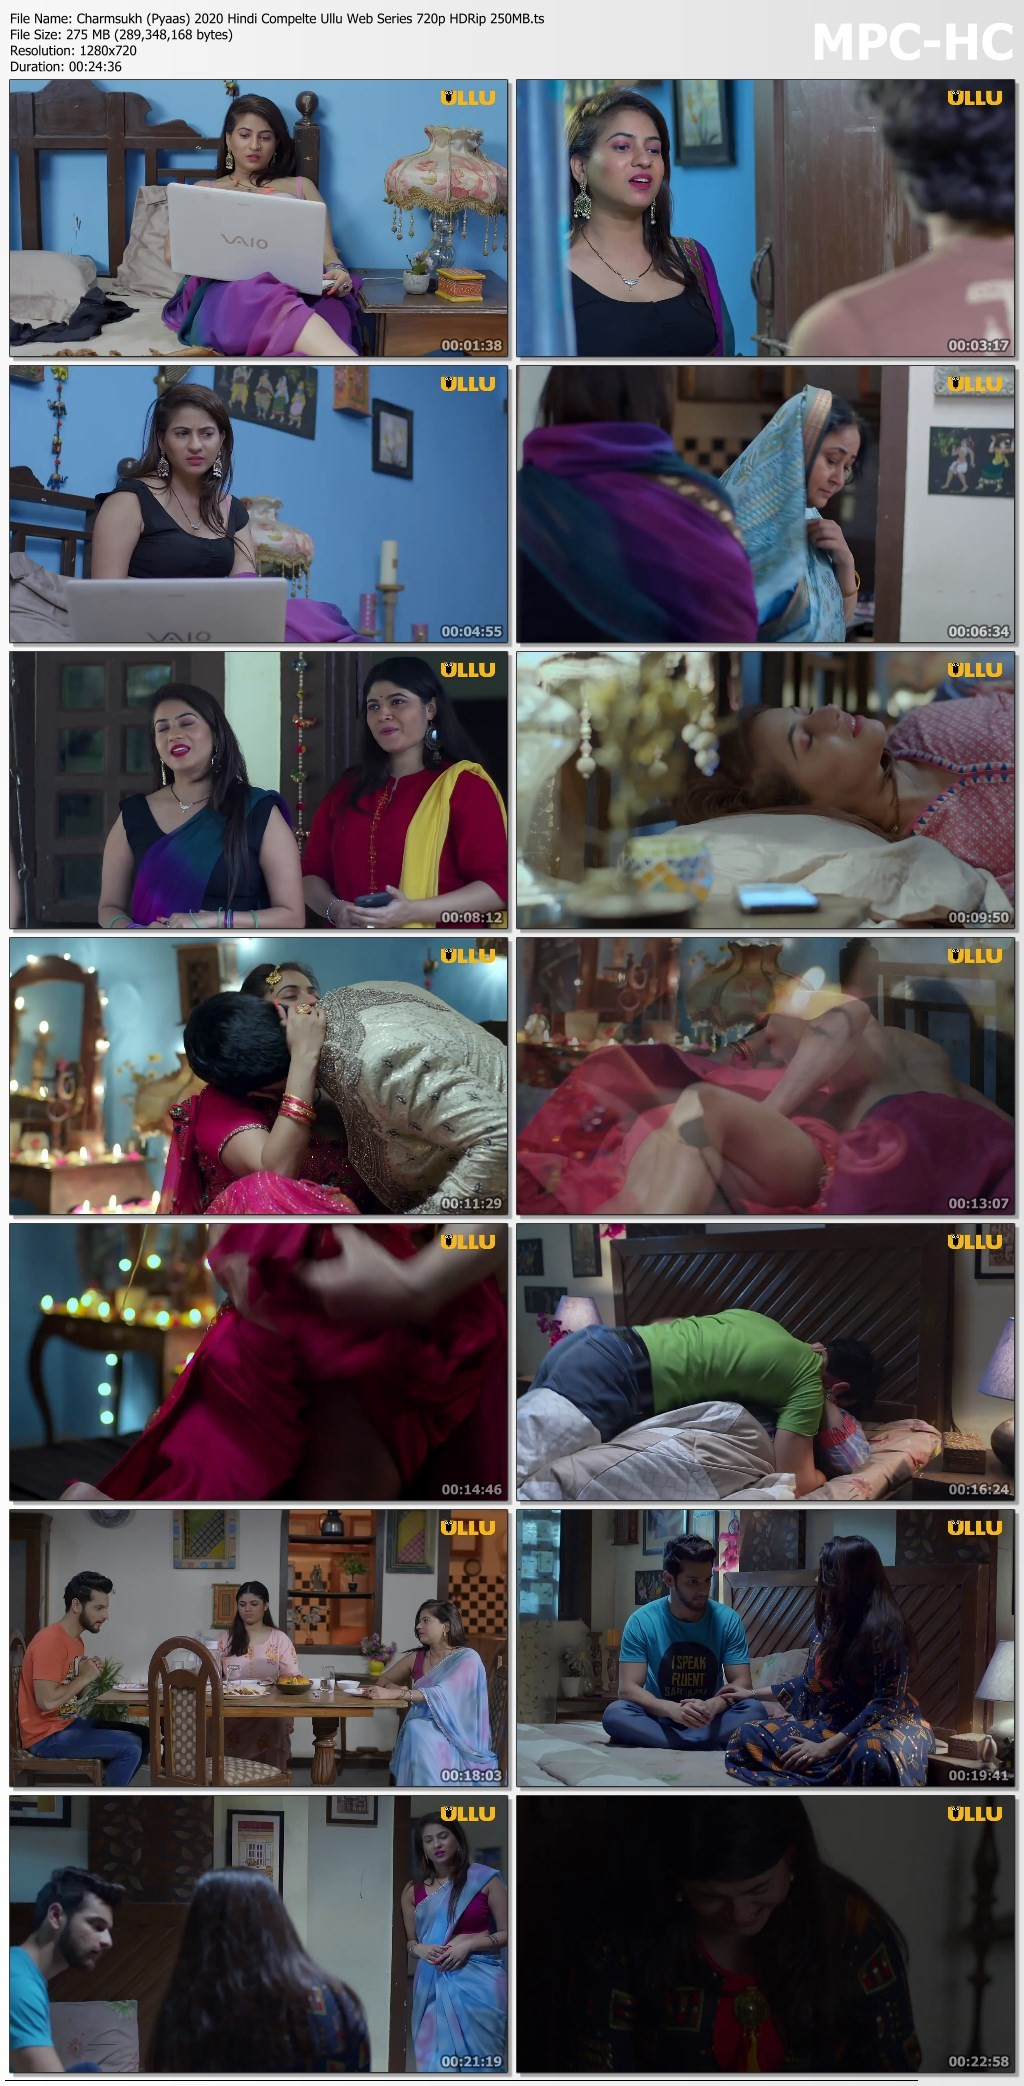 wm0bK - 18+ Charmsukh (Pyaas) 2020 Hindi Complete Ullu Hot Web Series 720p HDRip 350MB x264 AAC